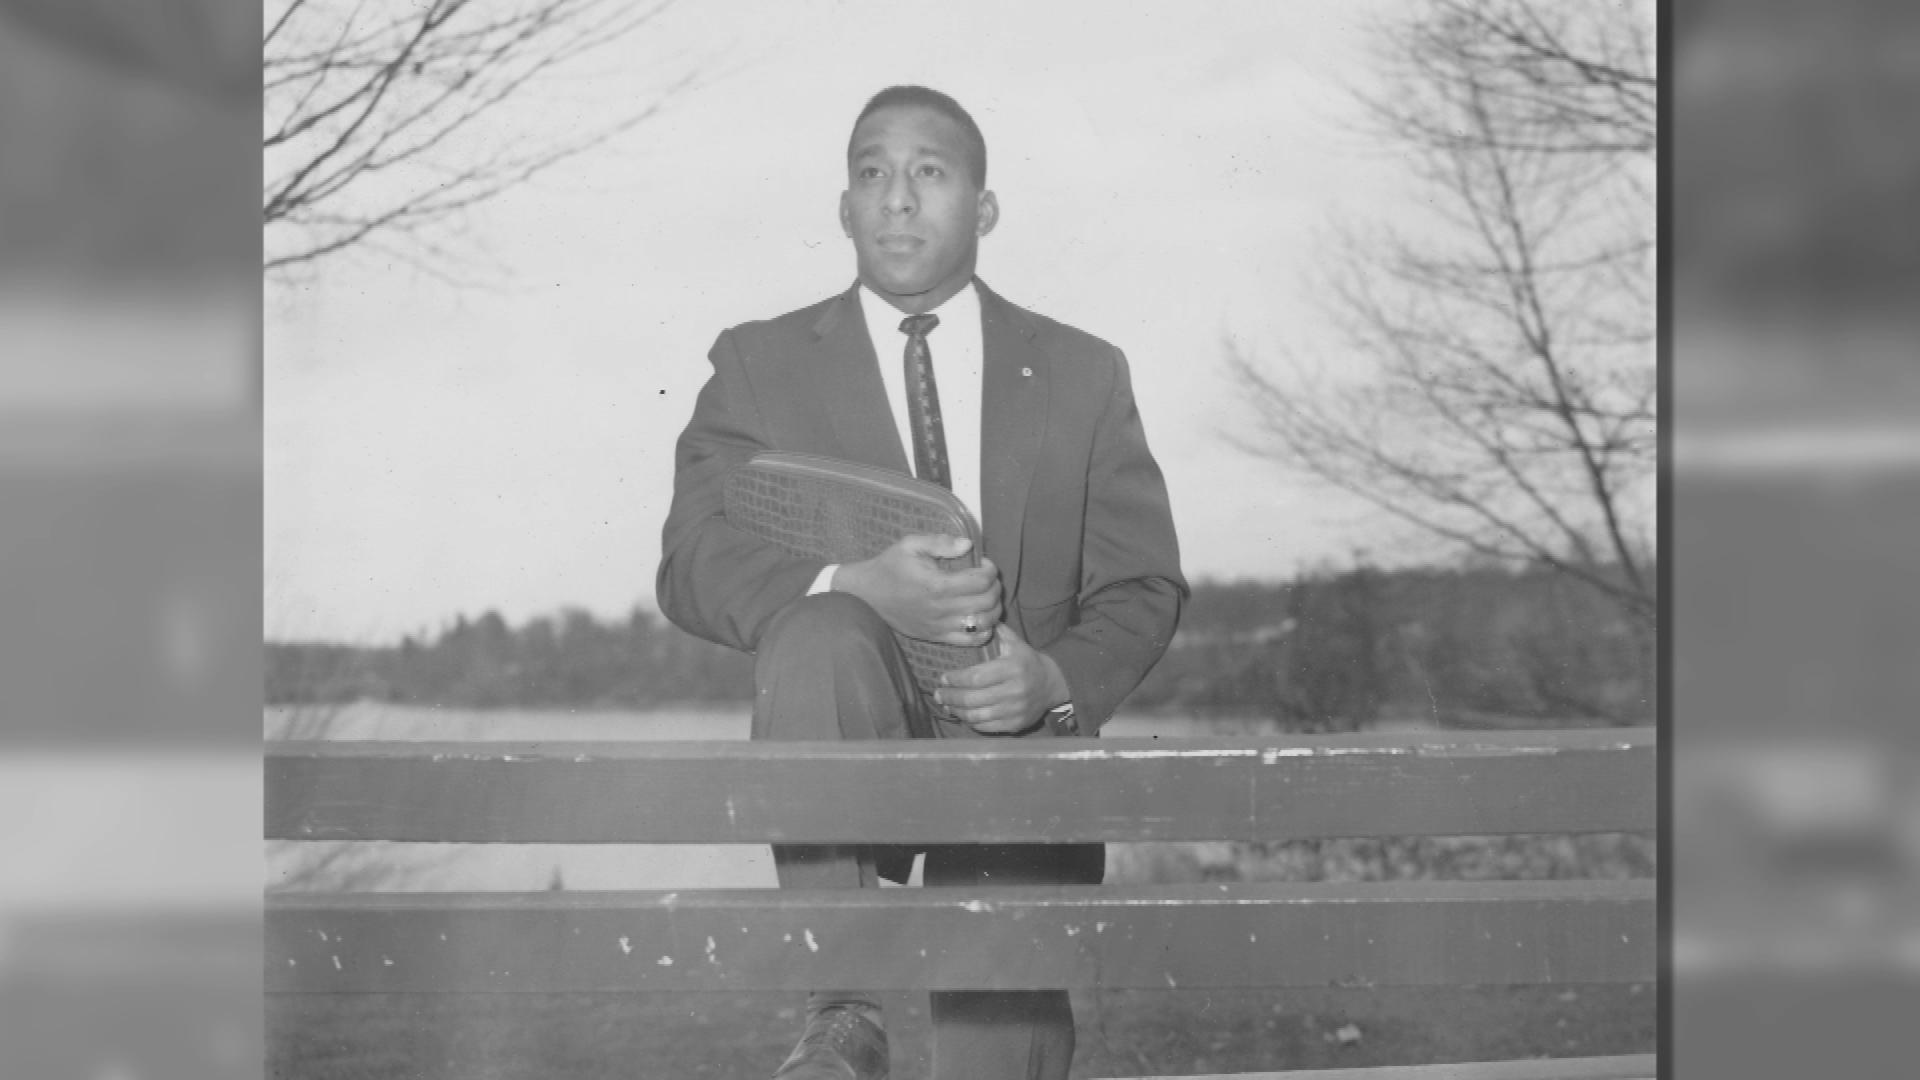 Civil Rights Activist Daniel Smith Reflects on Decades of Racial Justice Work